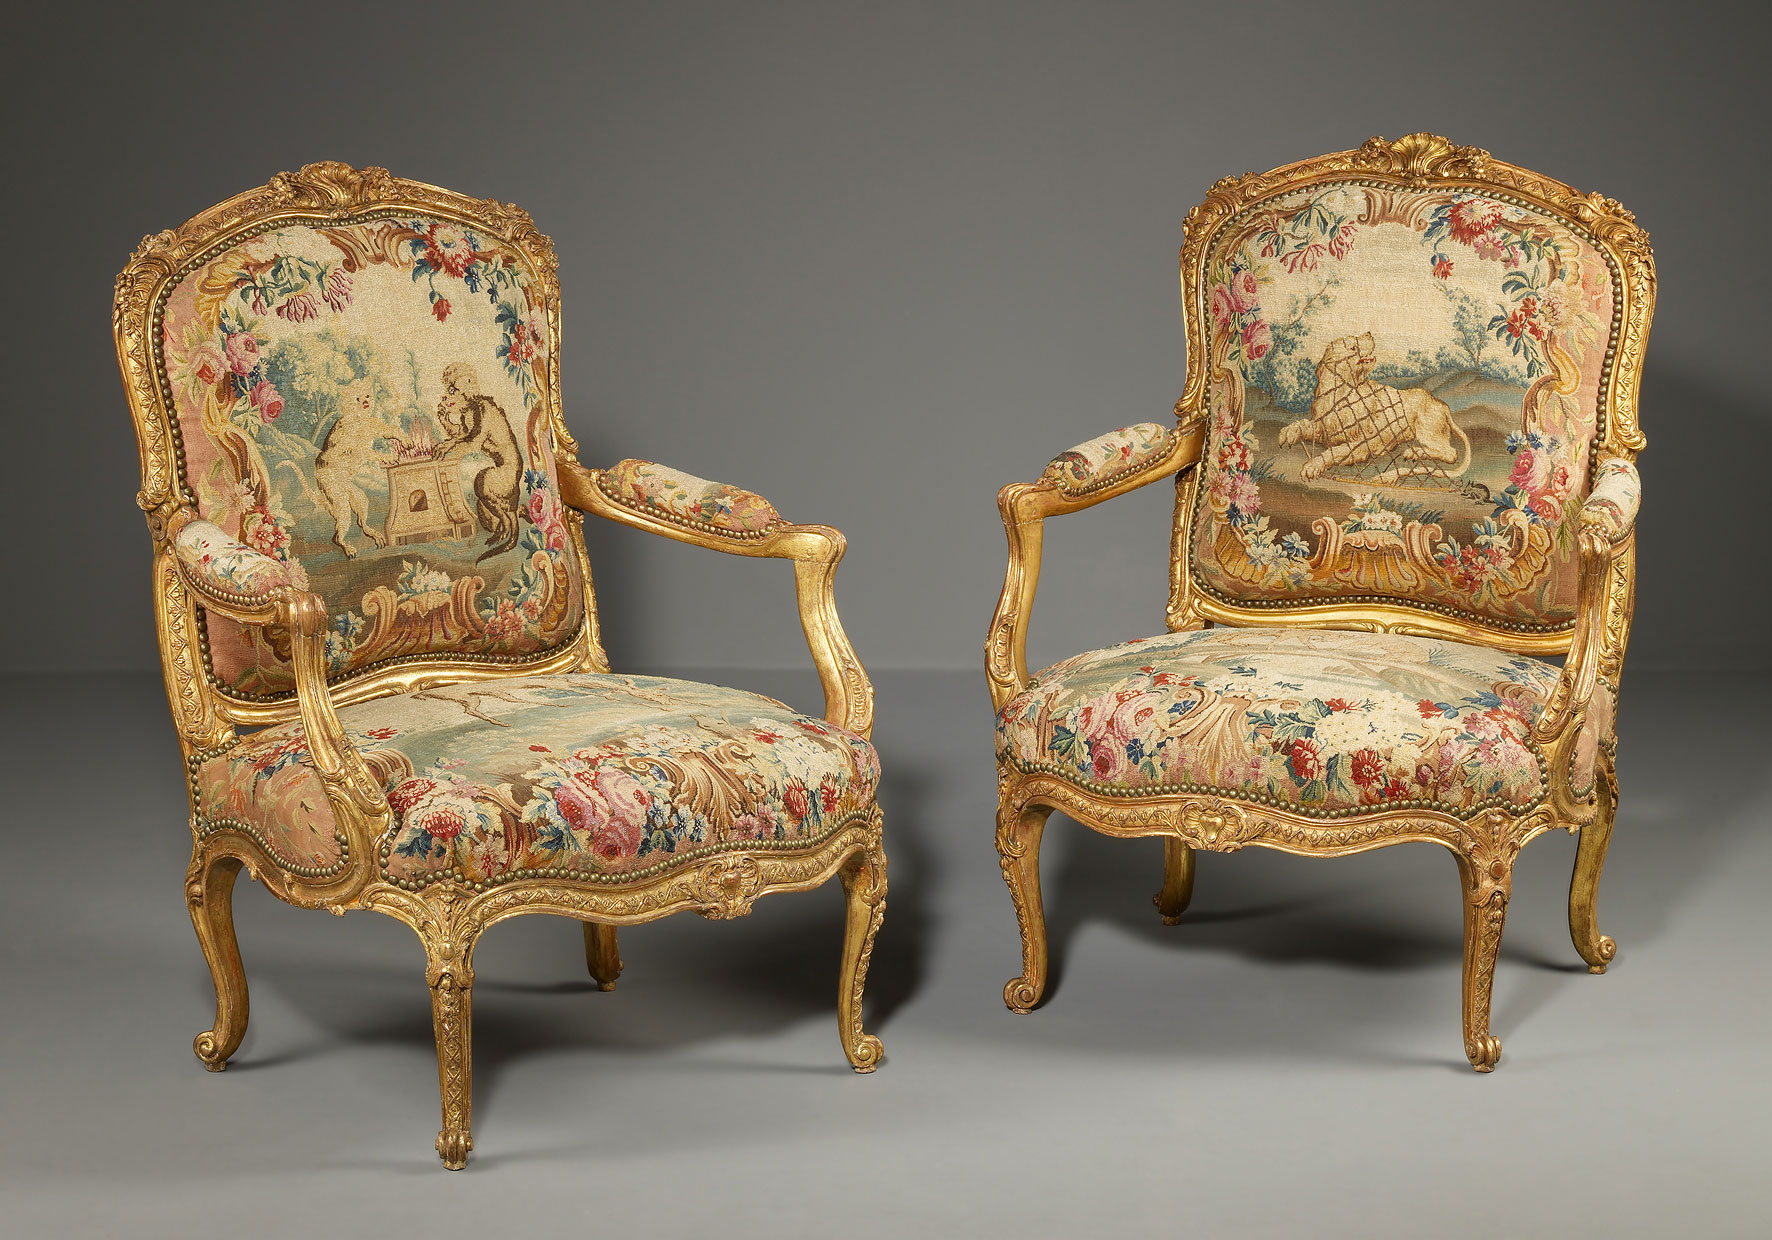 Pair Of Louis Xv Gilt Wood Armchairs From The Waterford